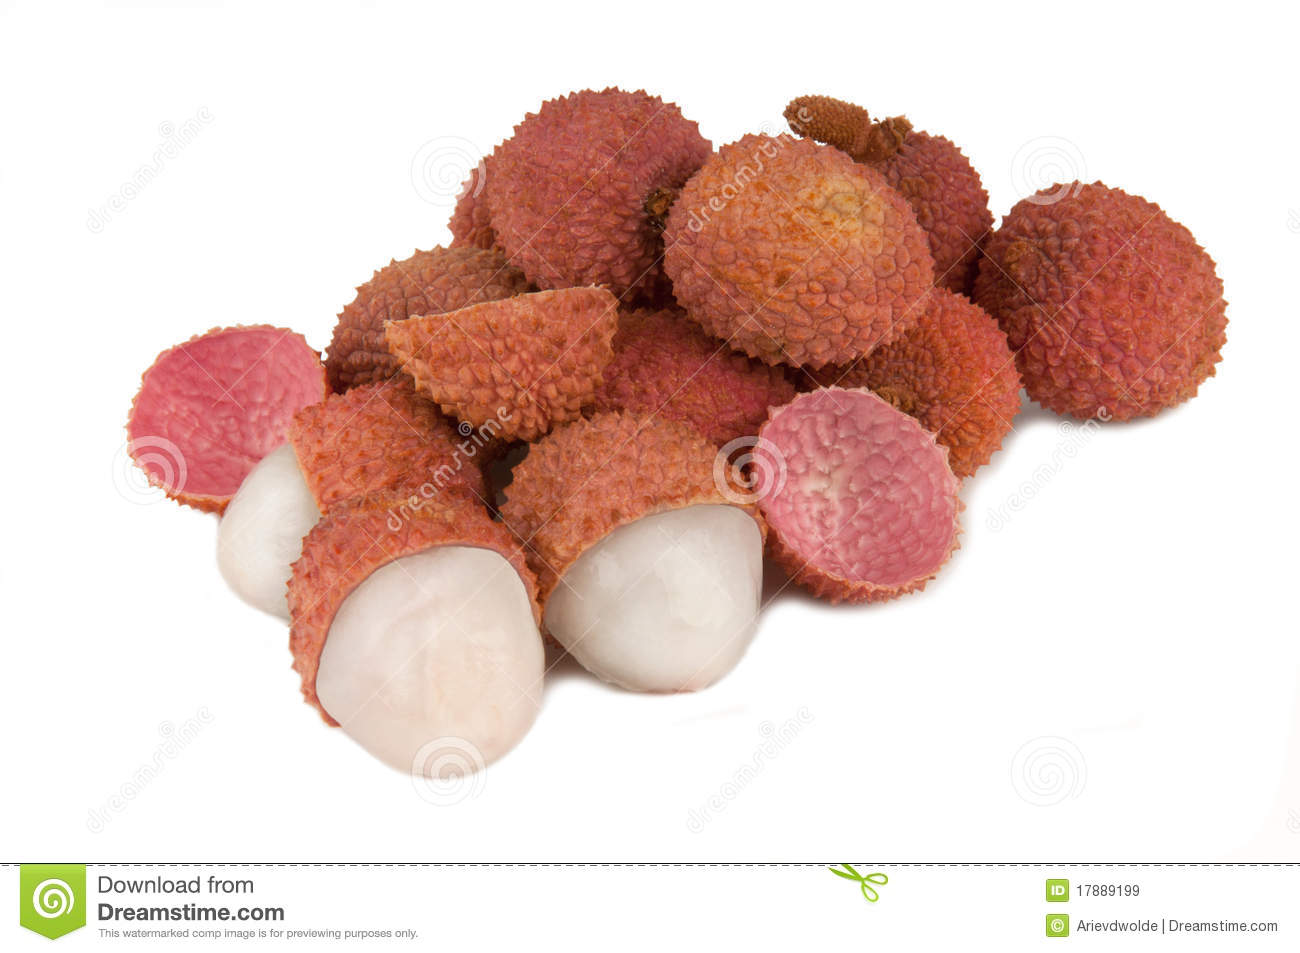 Lychee Fruits Royalty Free Stock Images - Image: 17889199